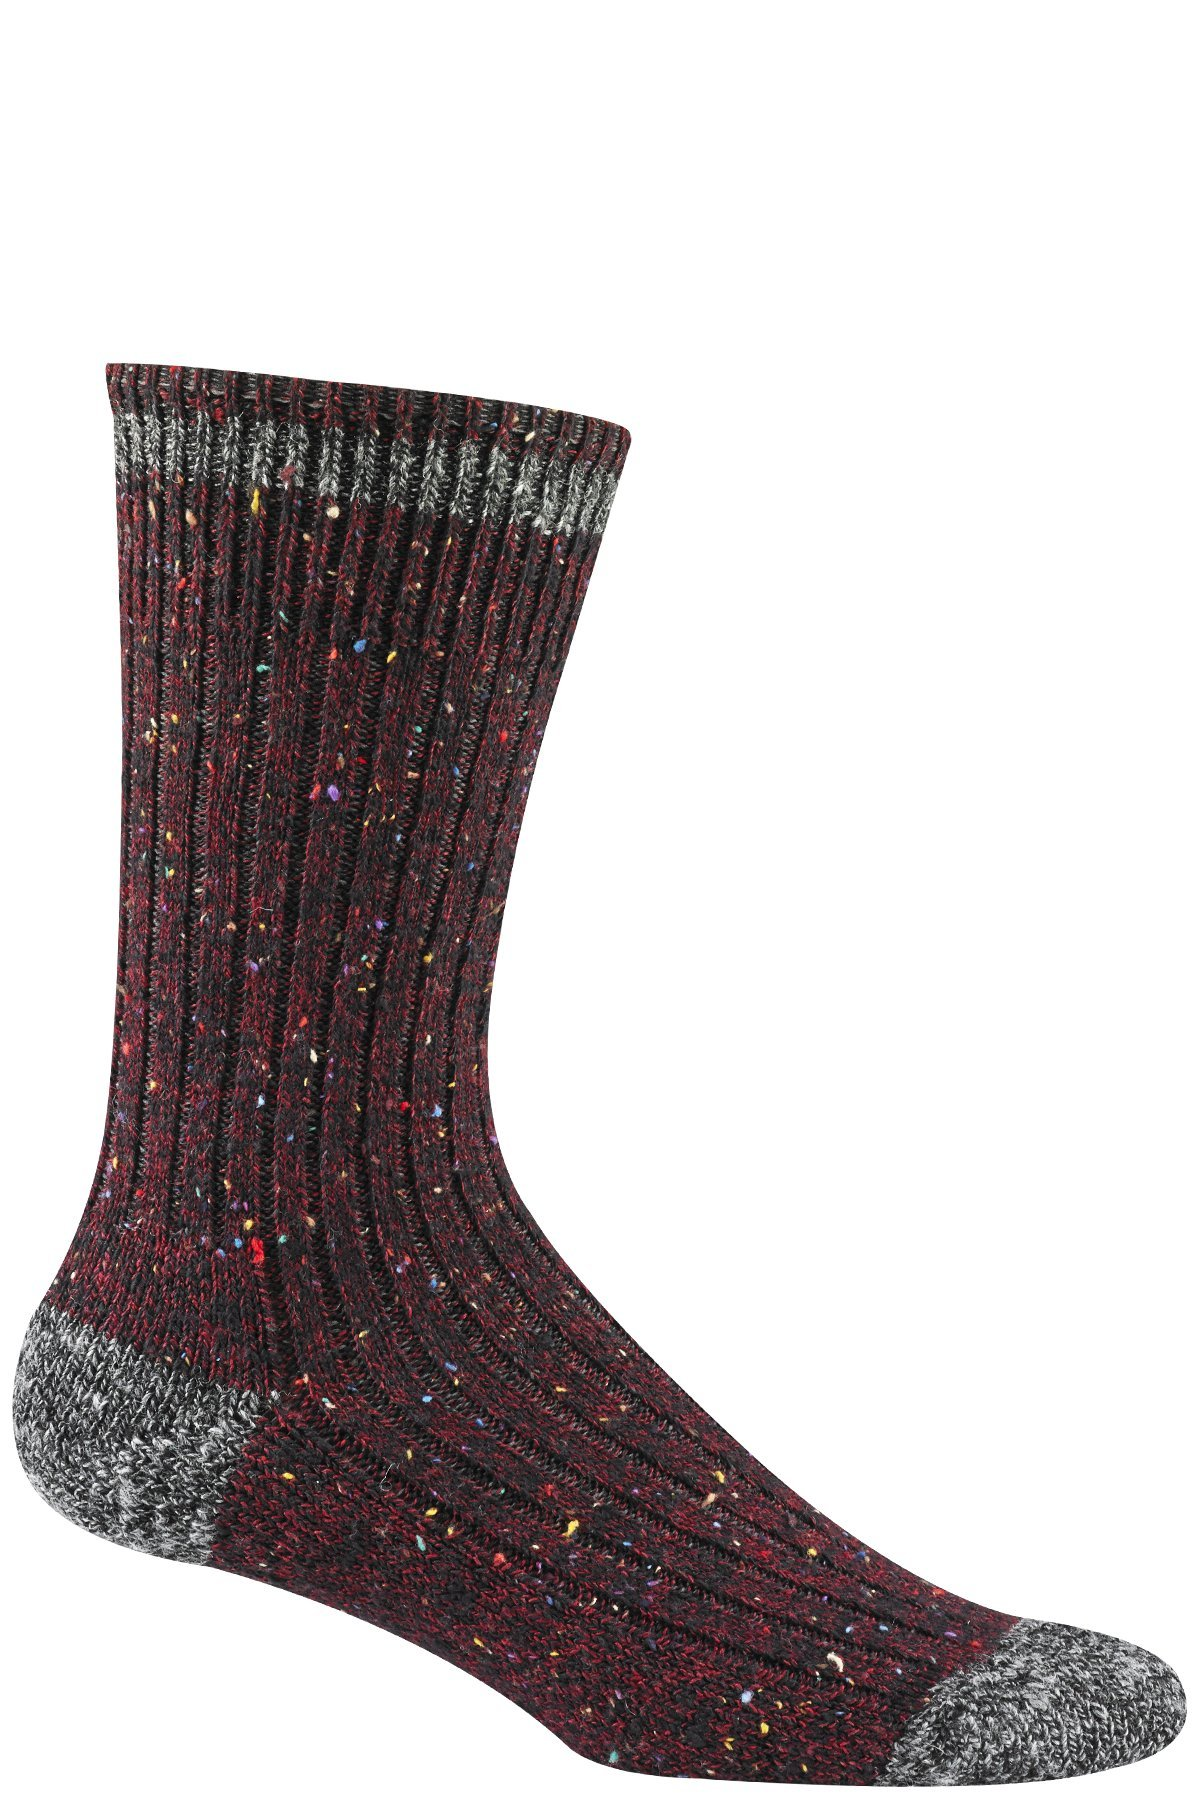 Wigwam Men's Fireside Authentic Classic Retro Fashion Crew Sock, Burgundy, Large with a Helicase brand sock ring